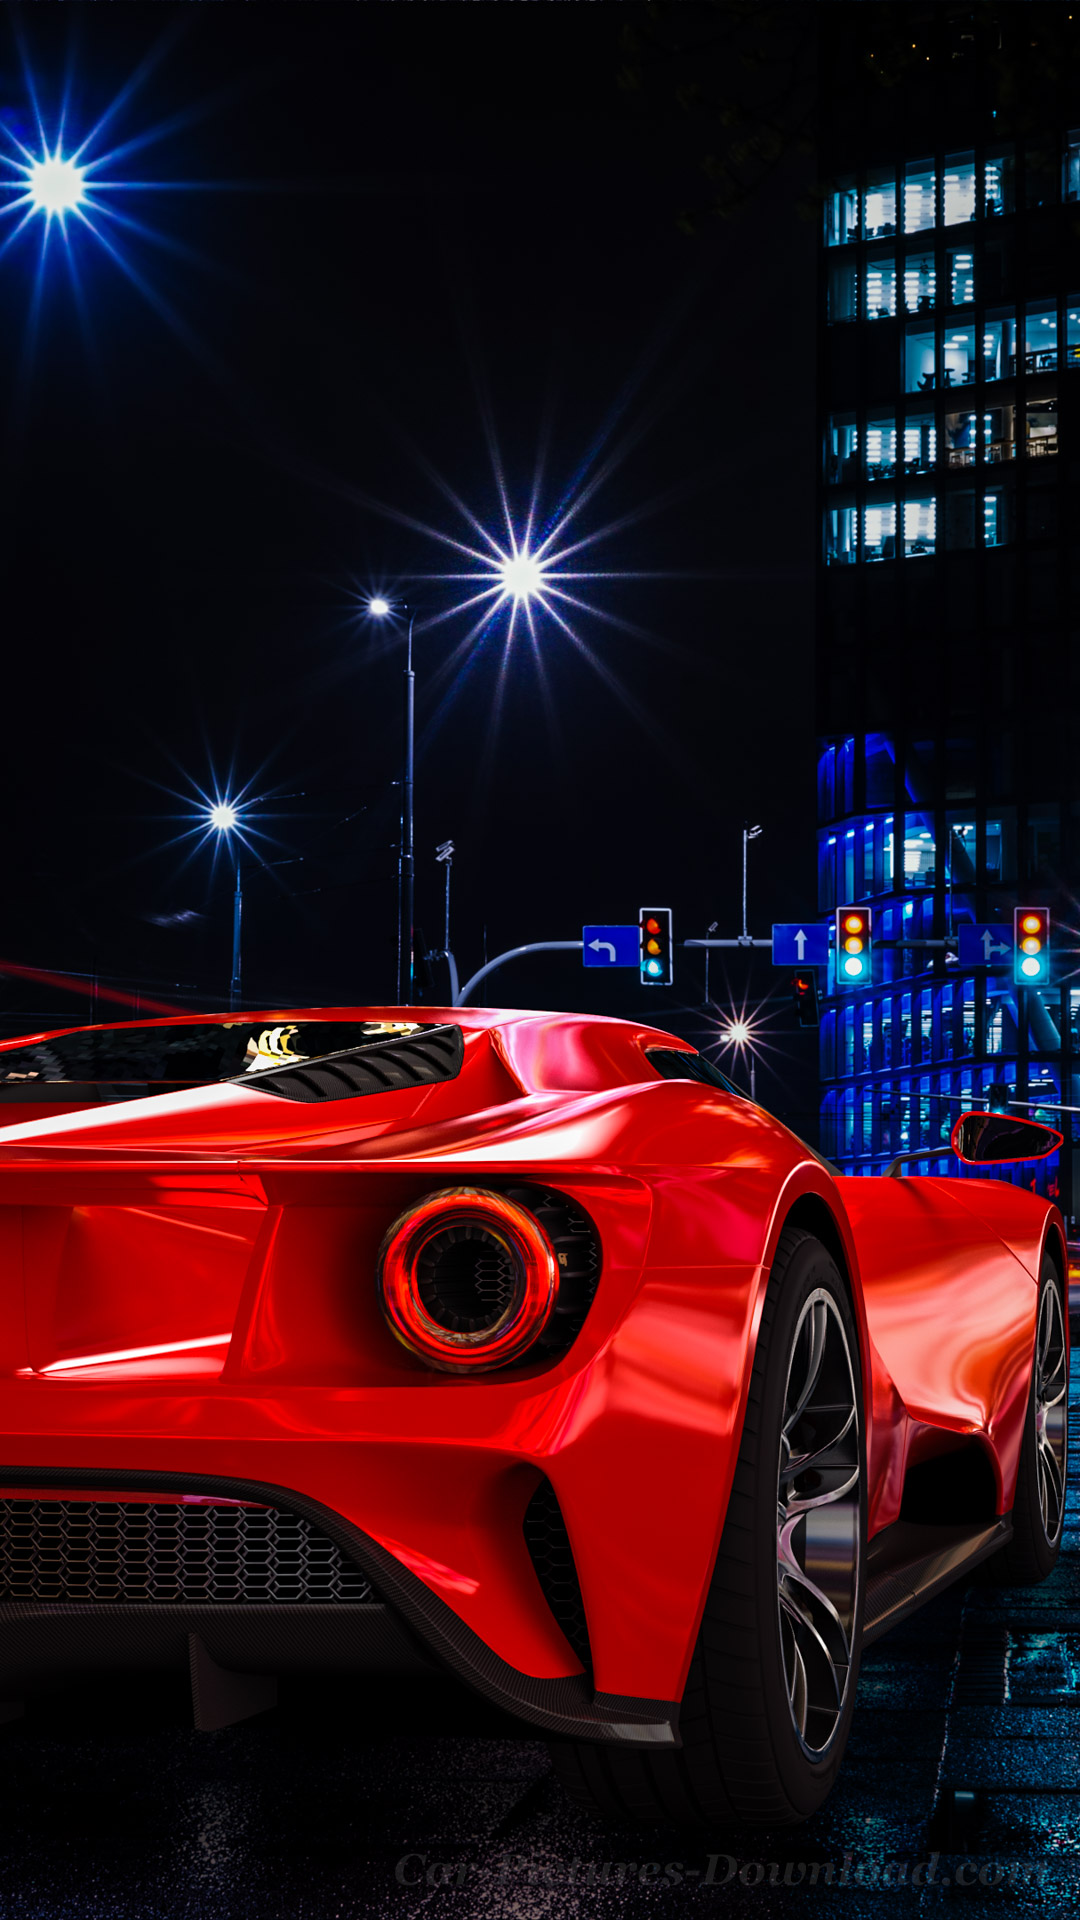 698 classic car hd wallpapers background images wallpaper abyss. Phone Wallpaper Images Best Quality High Resolution Download Free